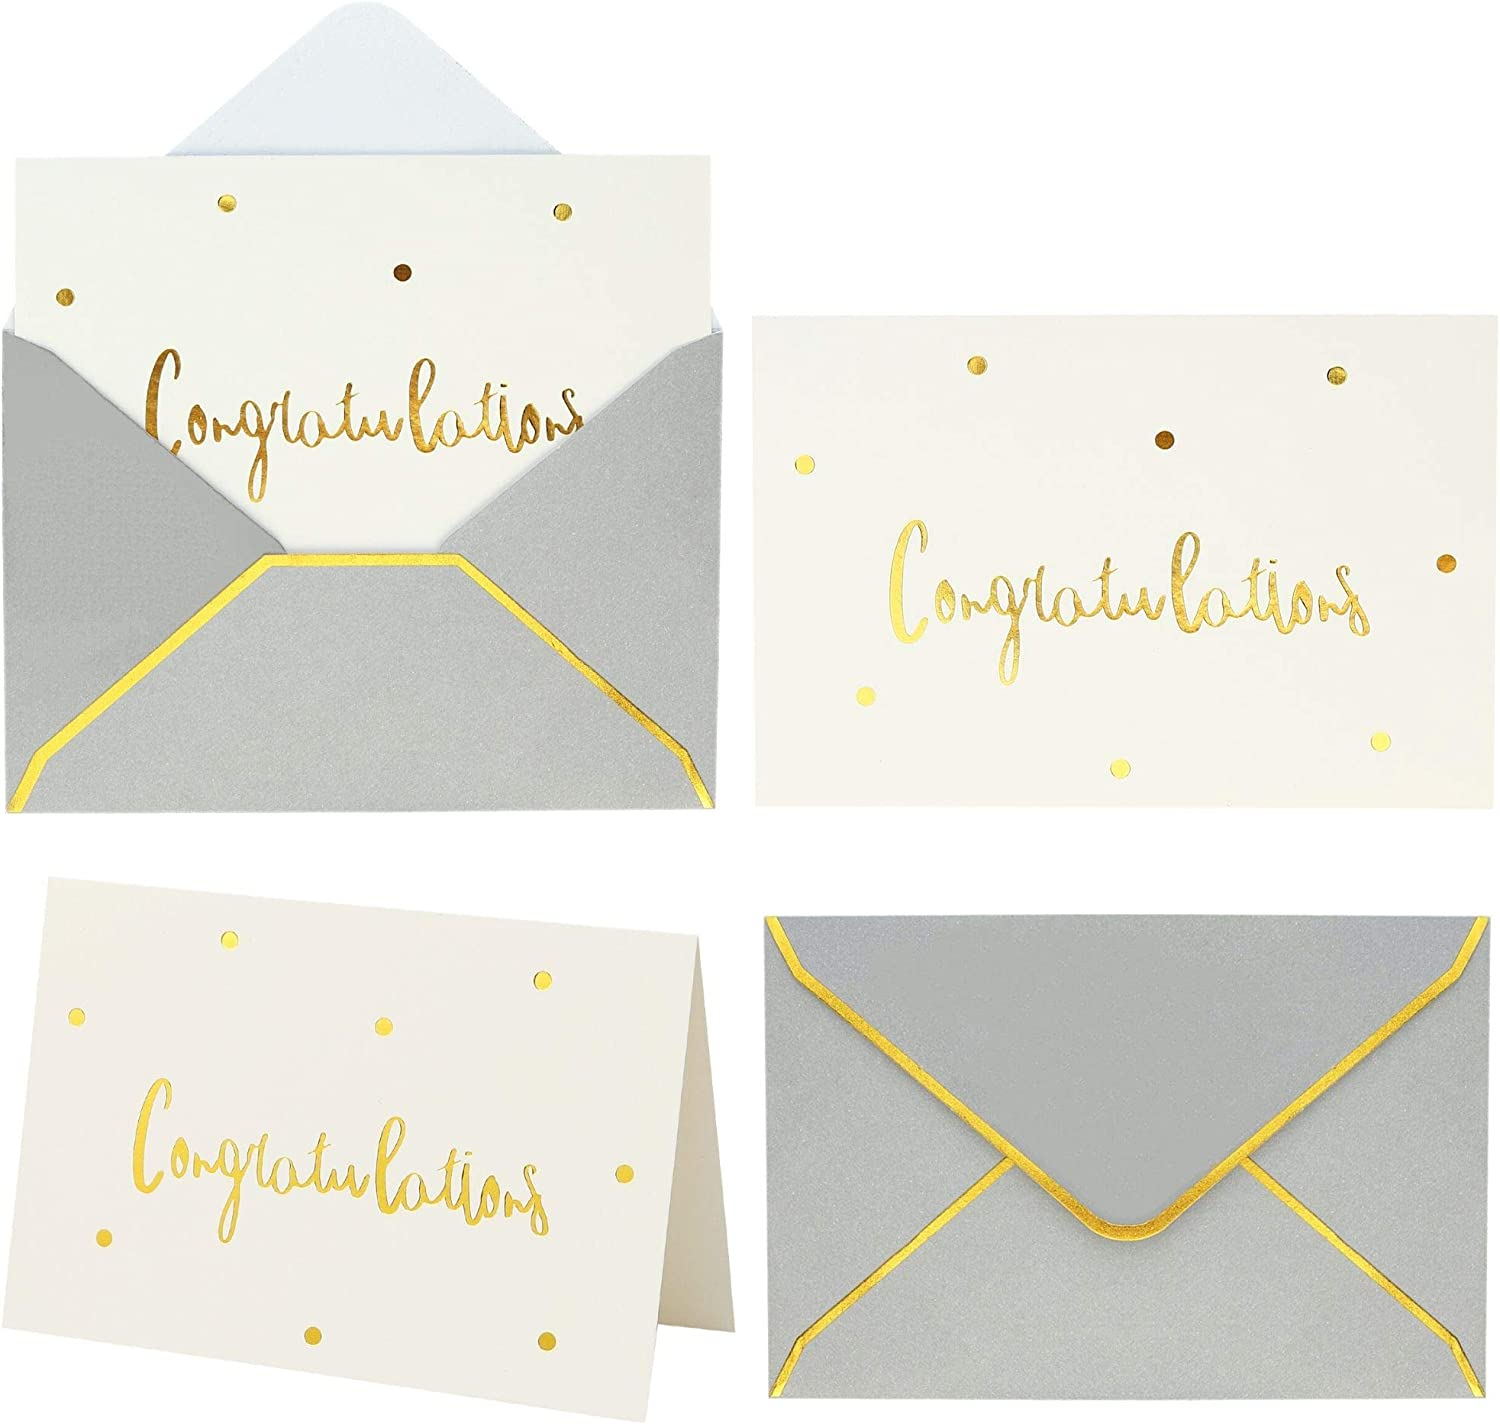 Gold and White Congratulations Cards with Envelopes | 36 PK All Occasion Greeting Cards 4x6 Inches | Graduation Cards Pack New Home Card Graduation Card Pack Engagement Card Congrats Card